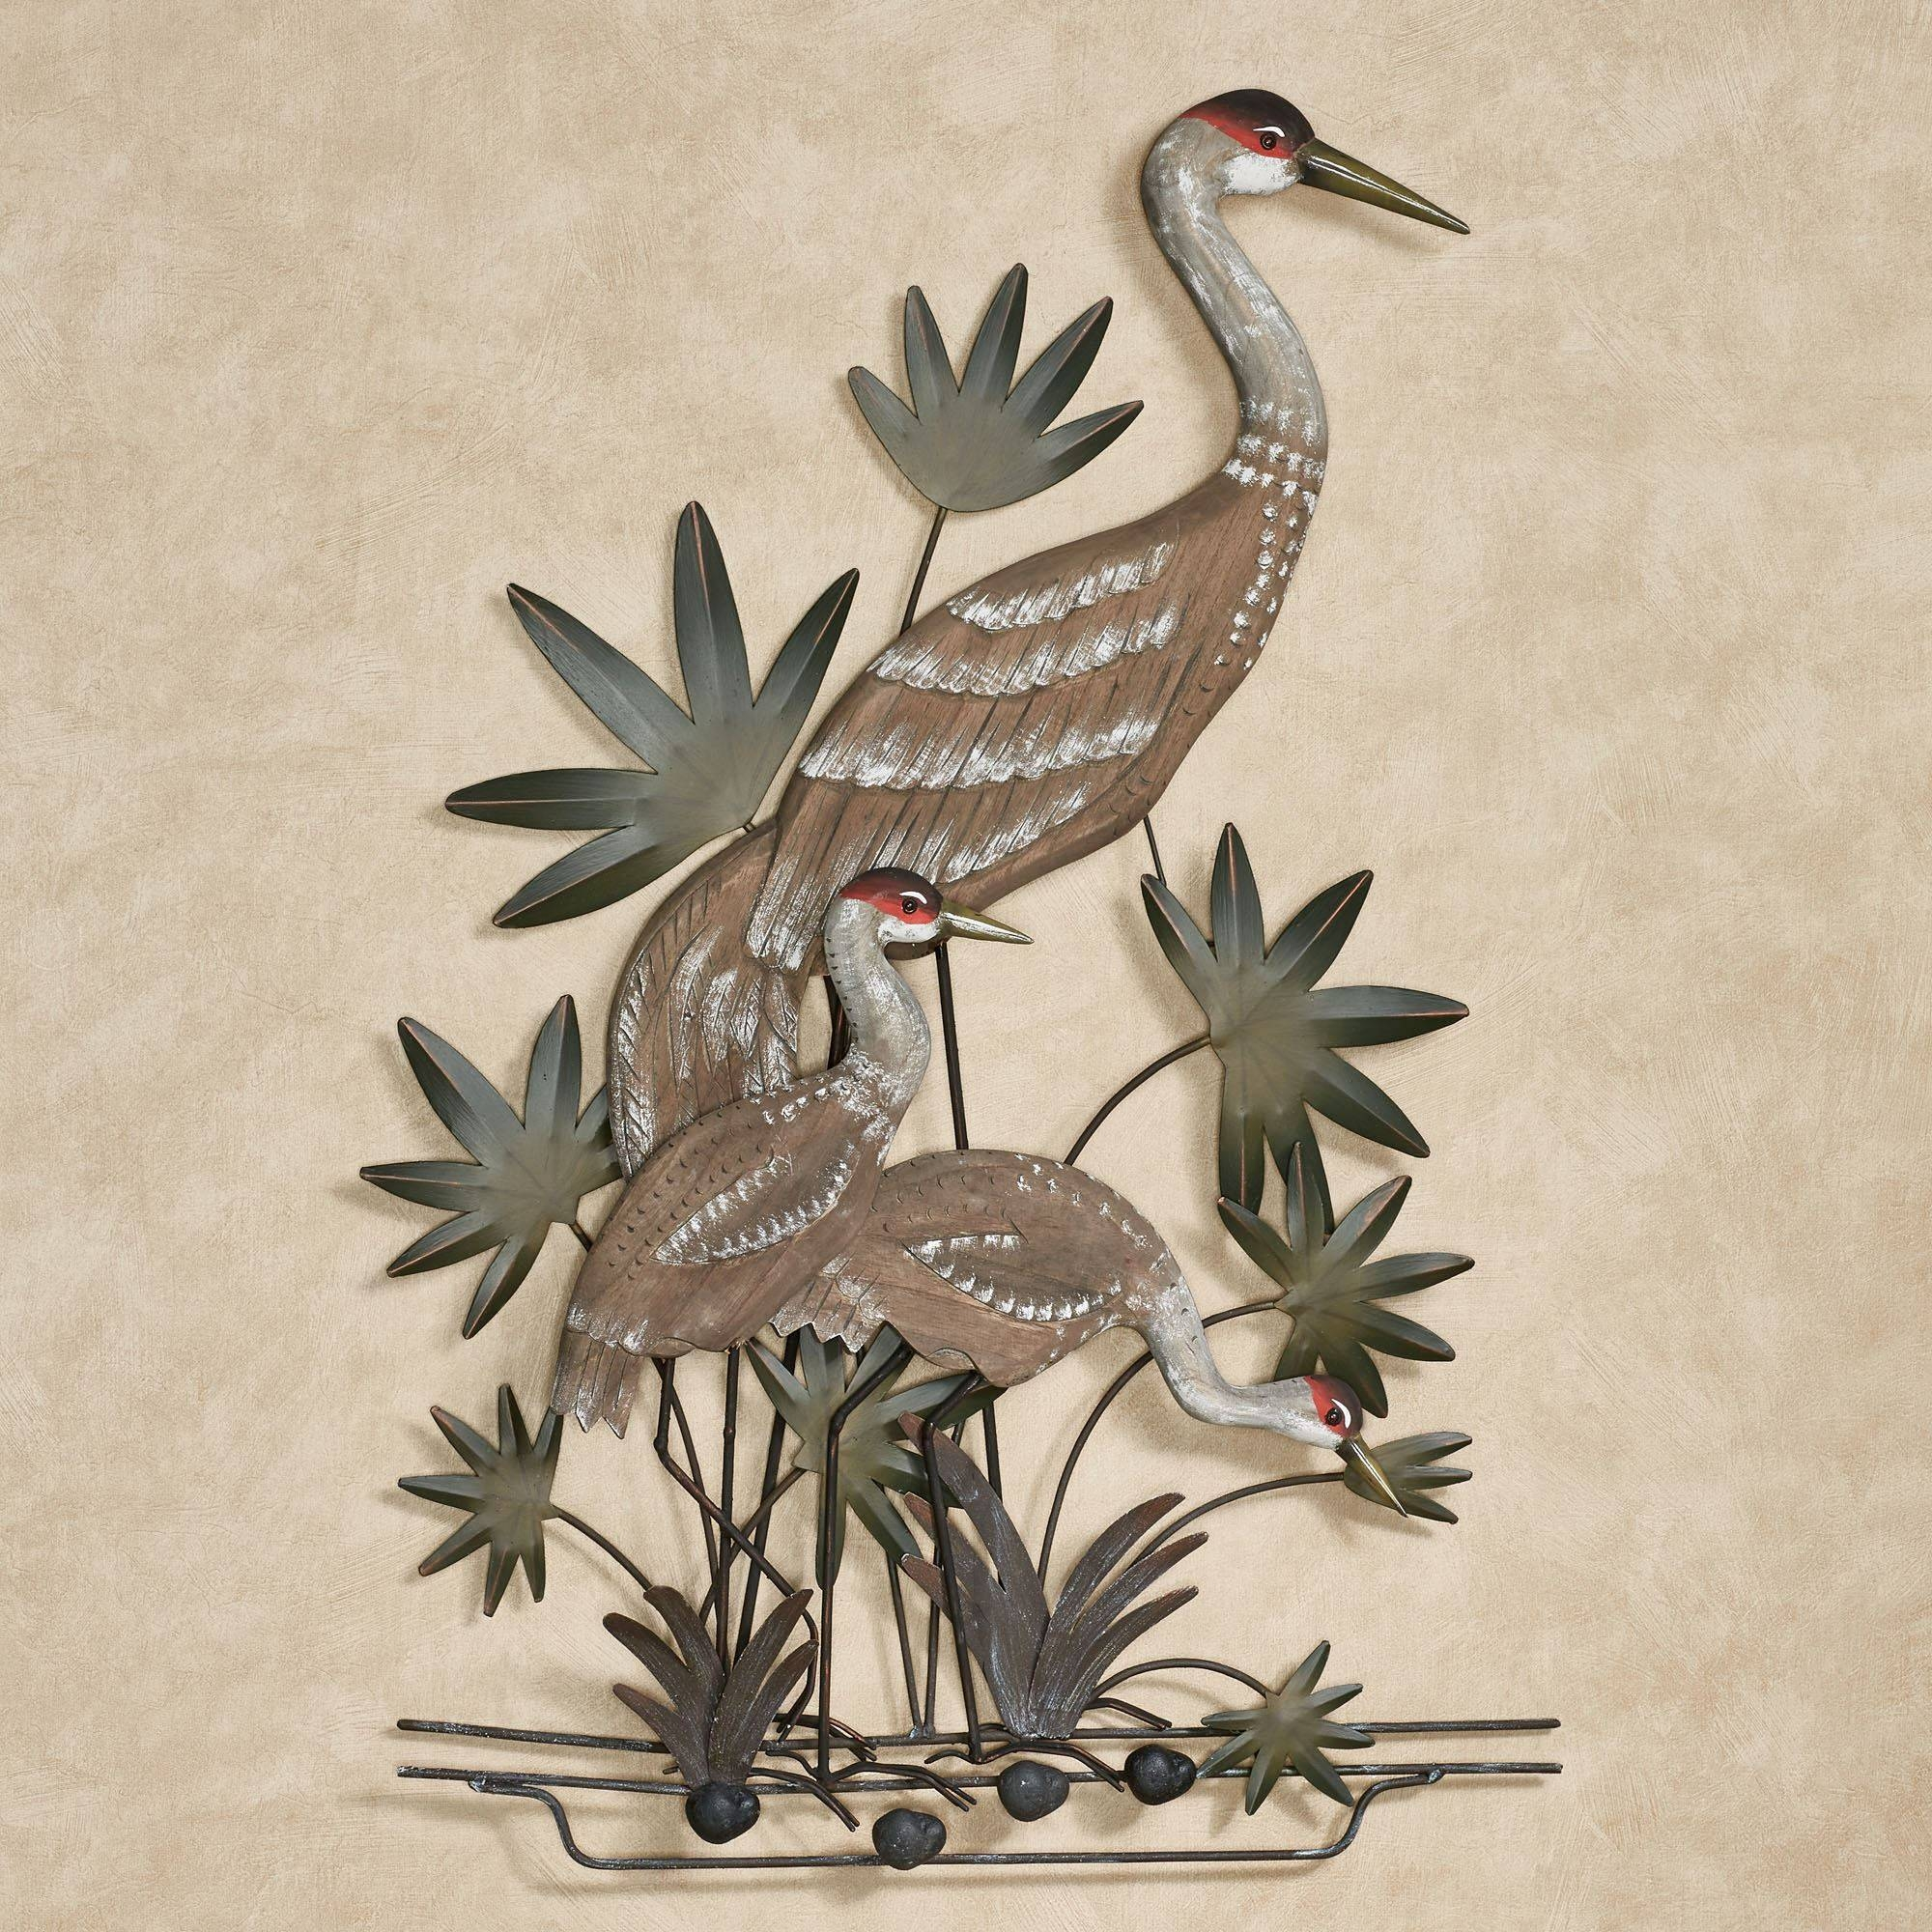 Animal Metal Wall Sculptures | Touch Of Class With Regard To Current Heron Metal Wall Art (View 10 of 20)